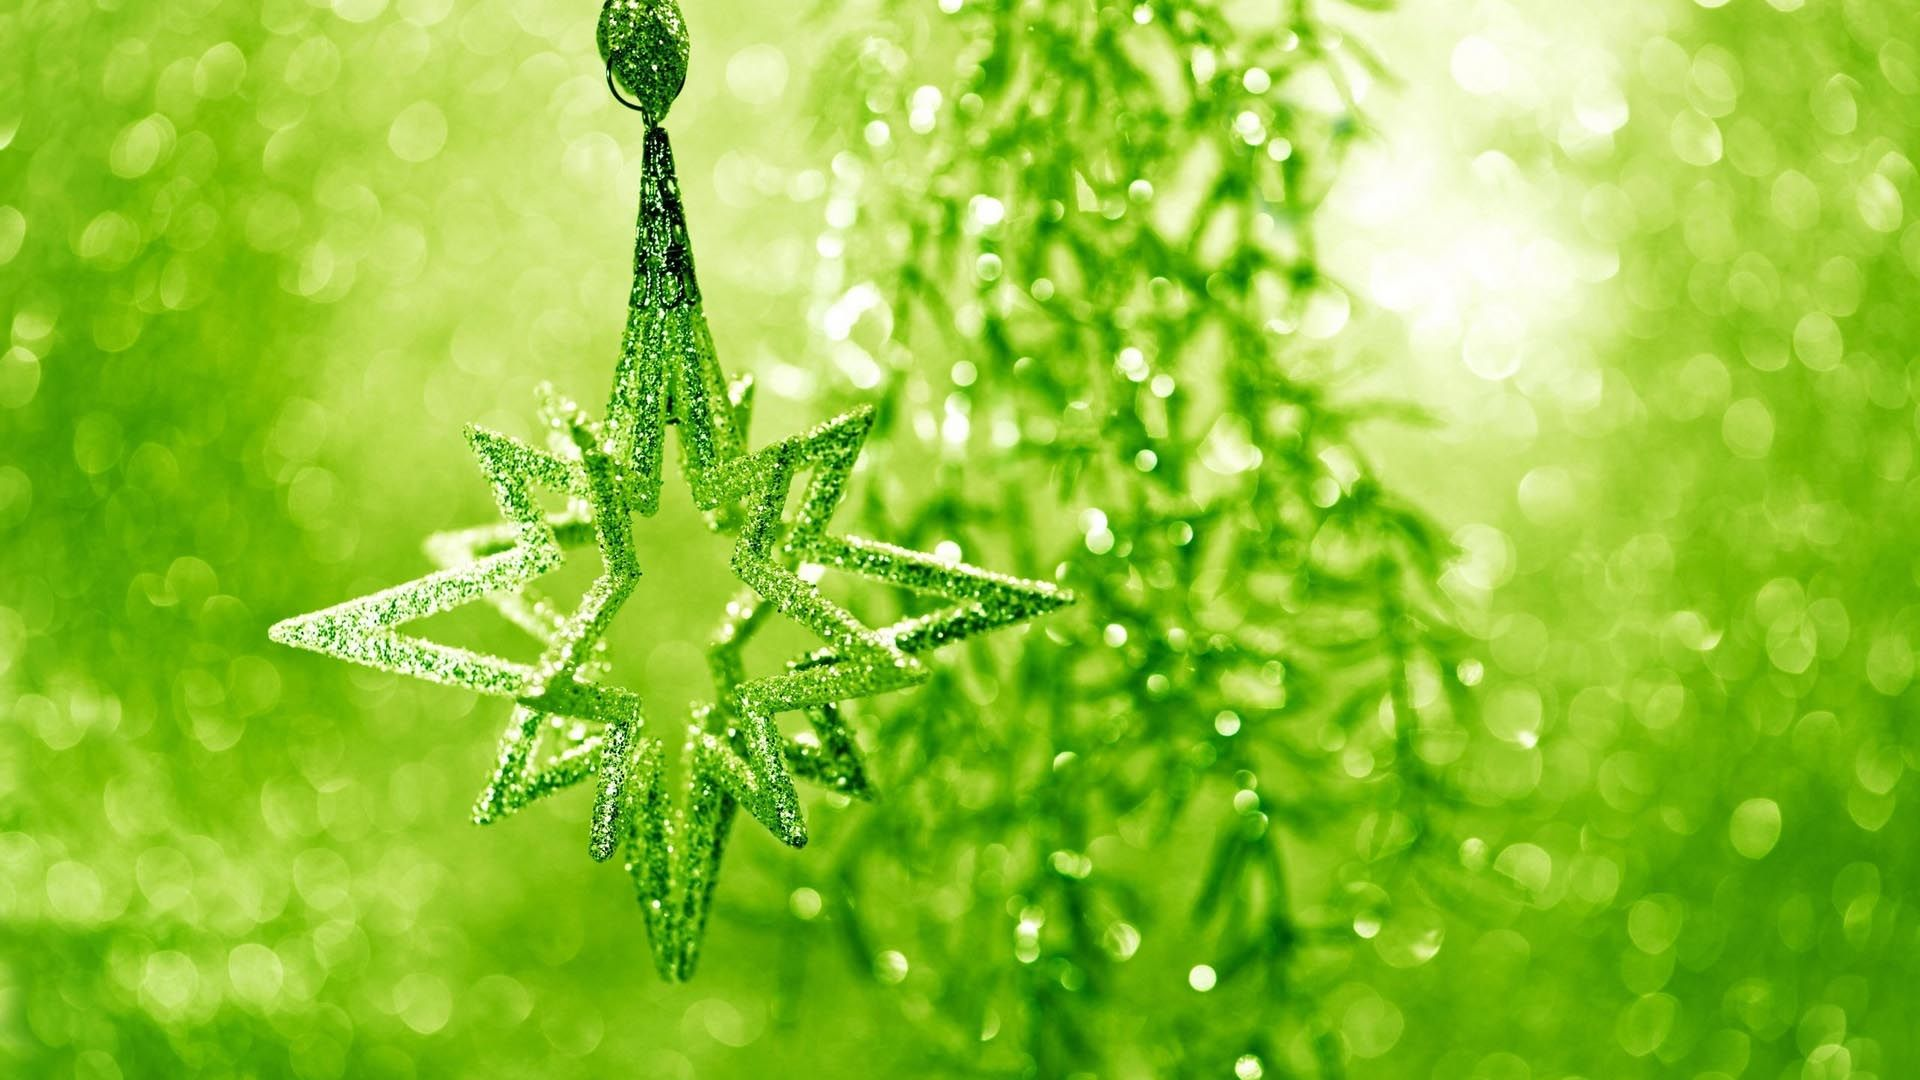 Green Christmas a wallpaper